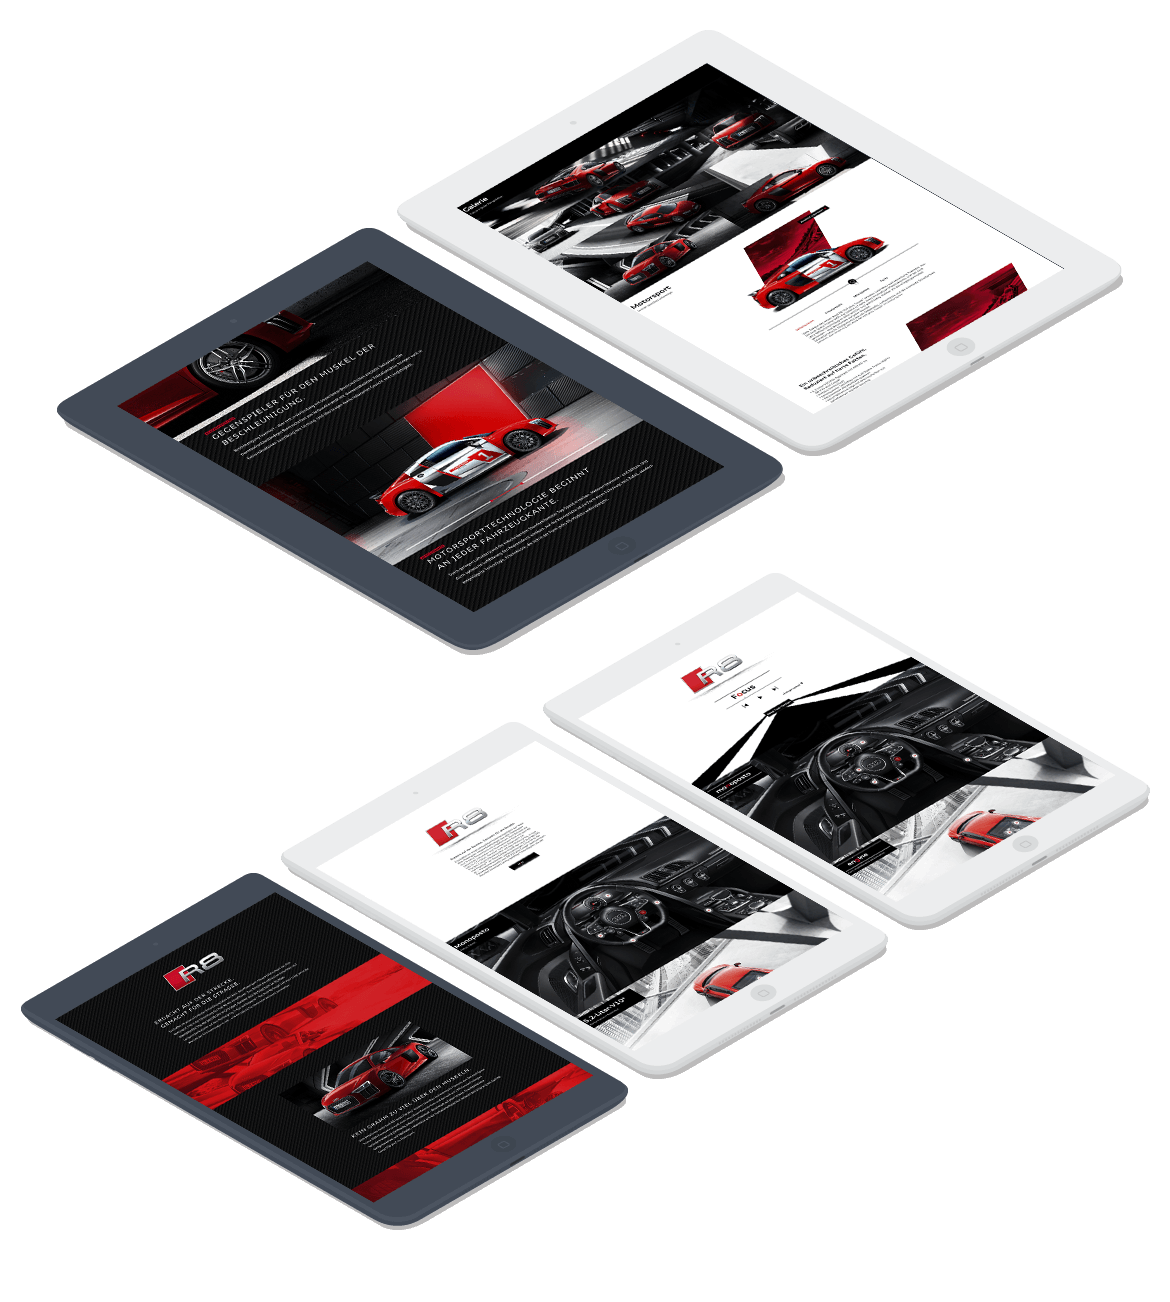 audi_restart_project_visualisation_03